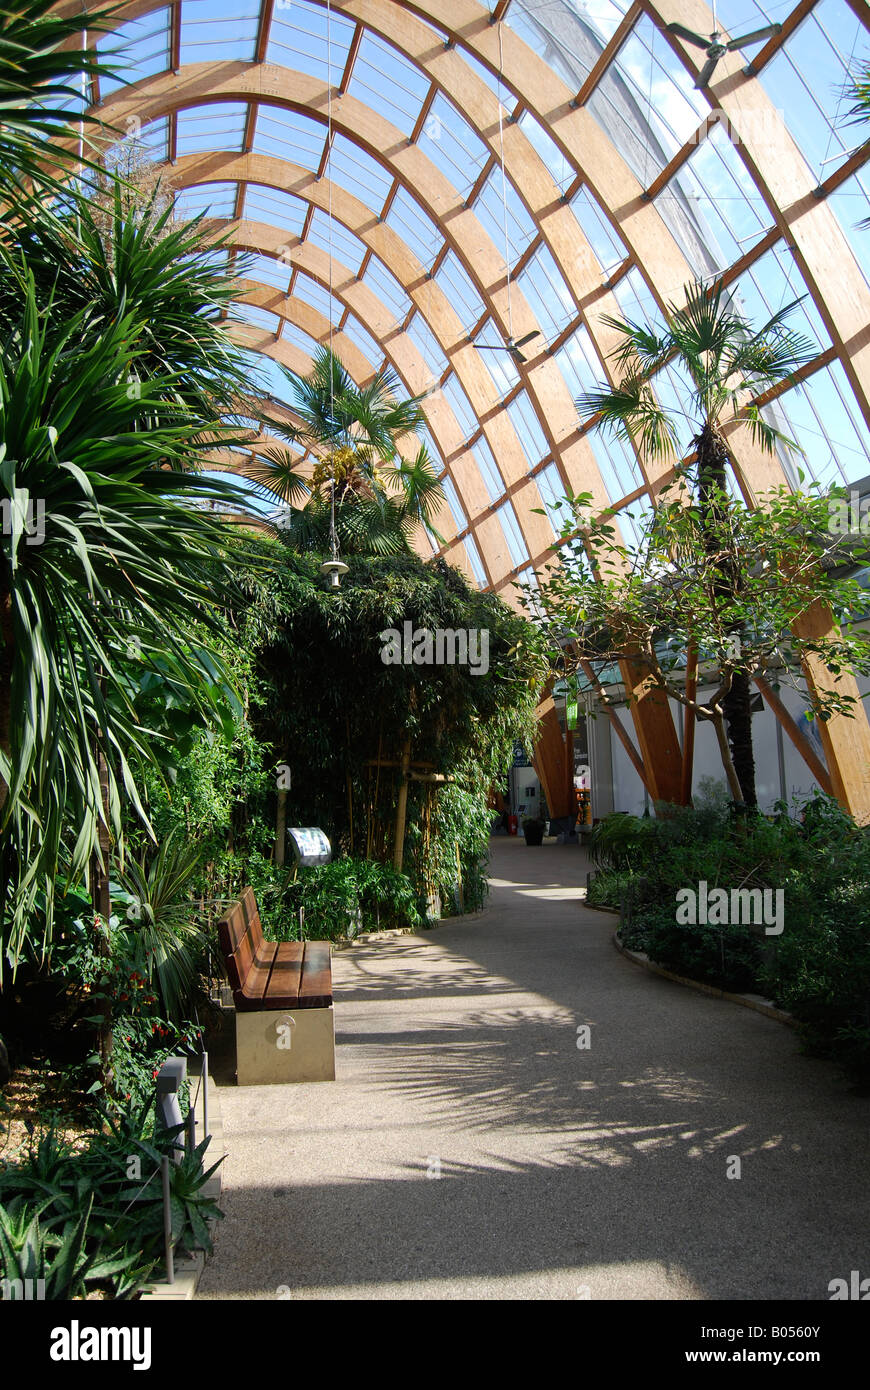 architecture sheffield winter gardens wooden building public art